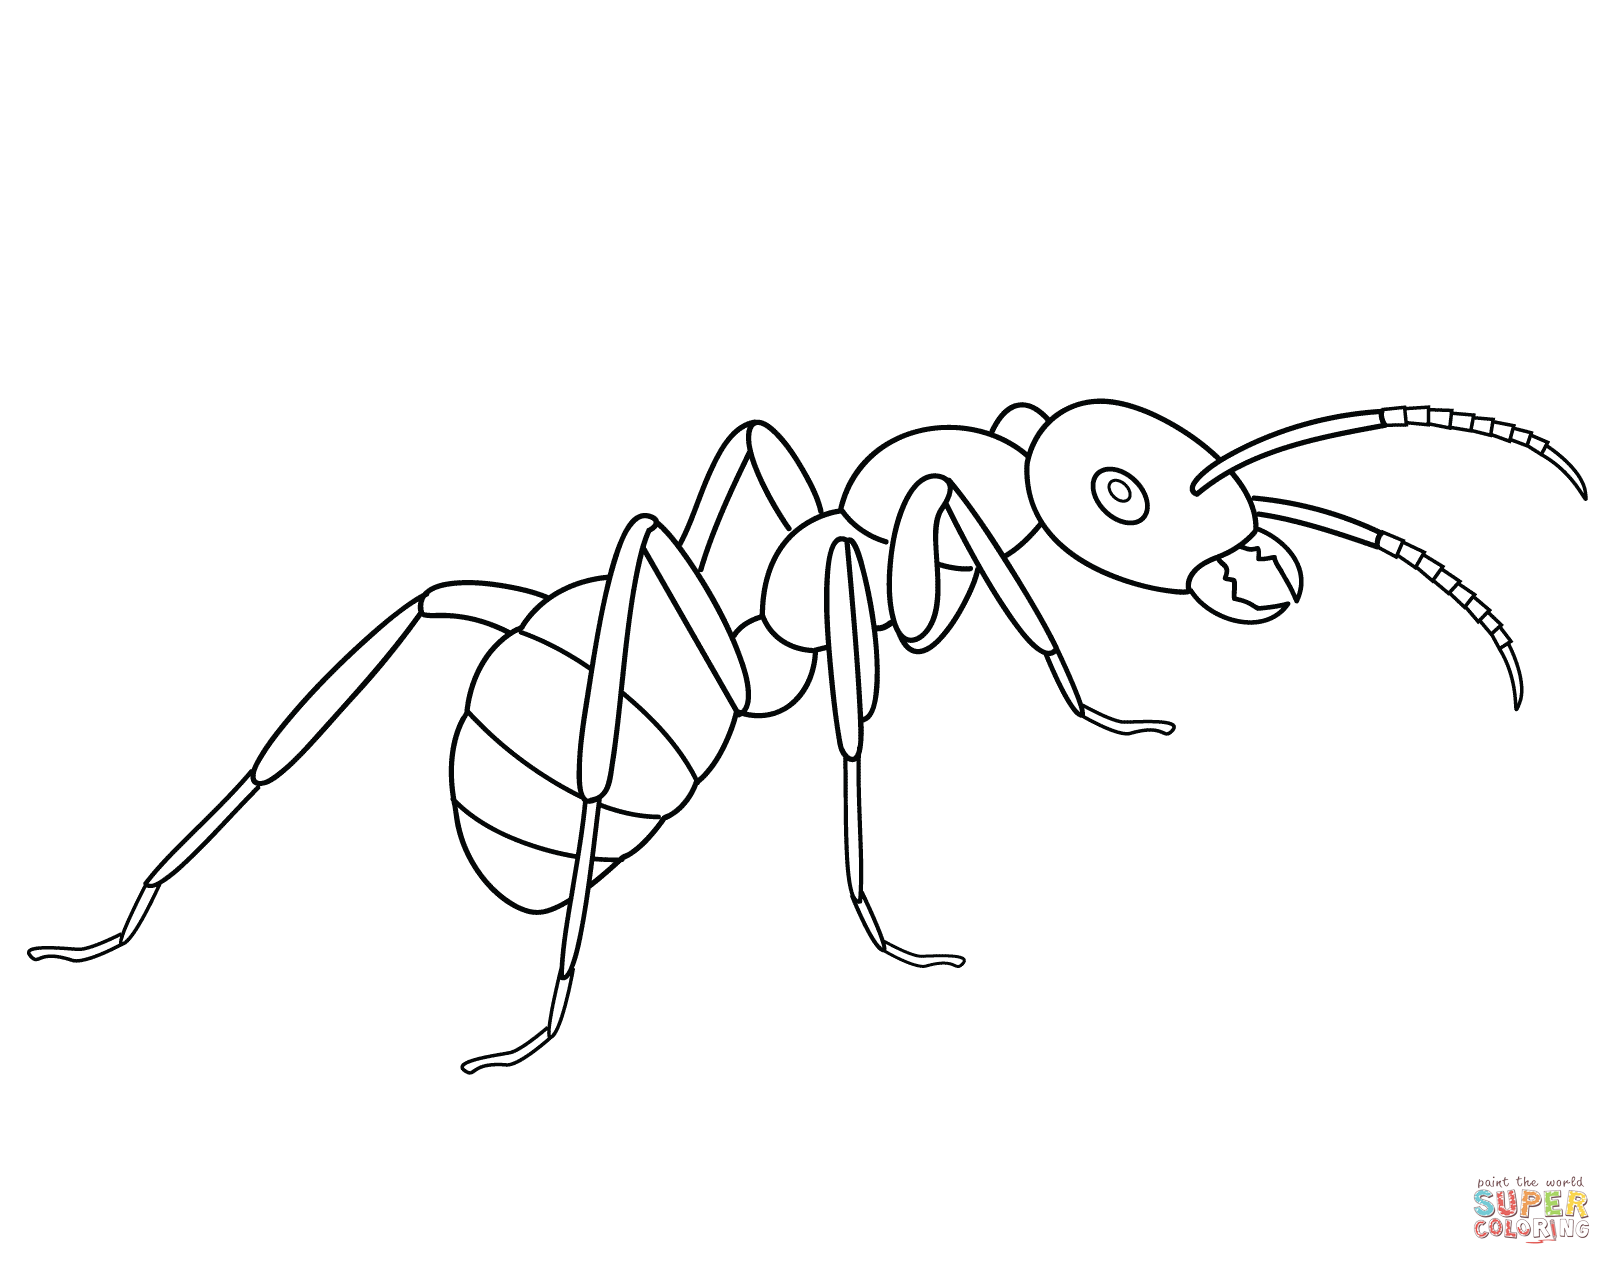 Coloring pages free ant. Ants clipart colour